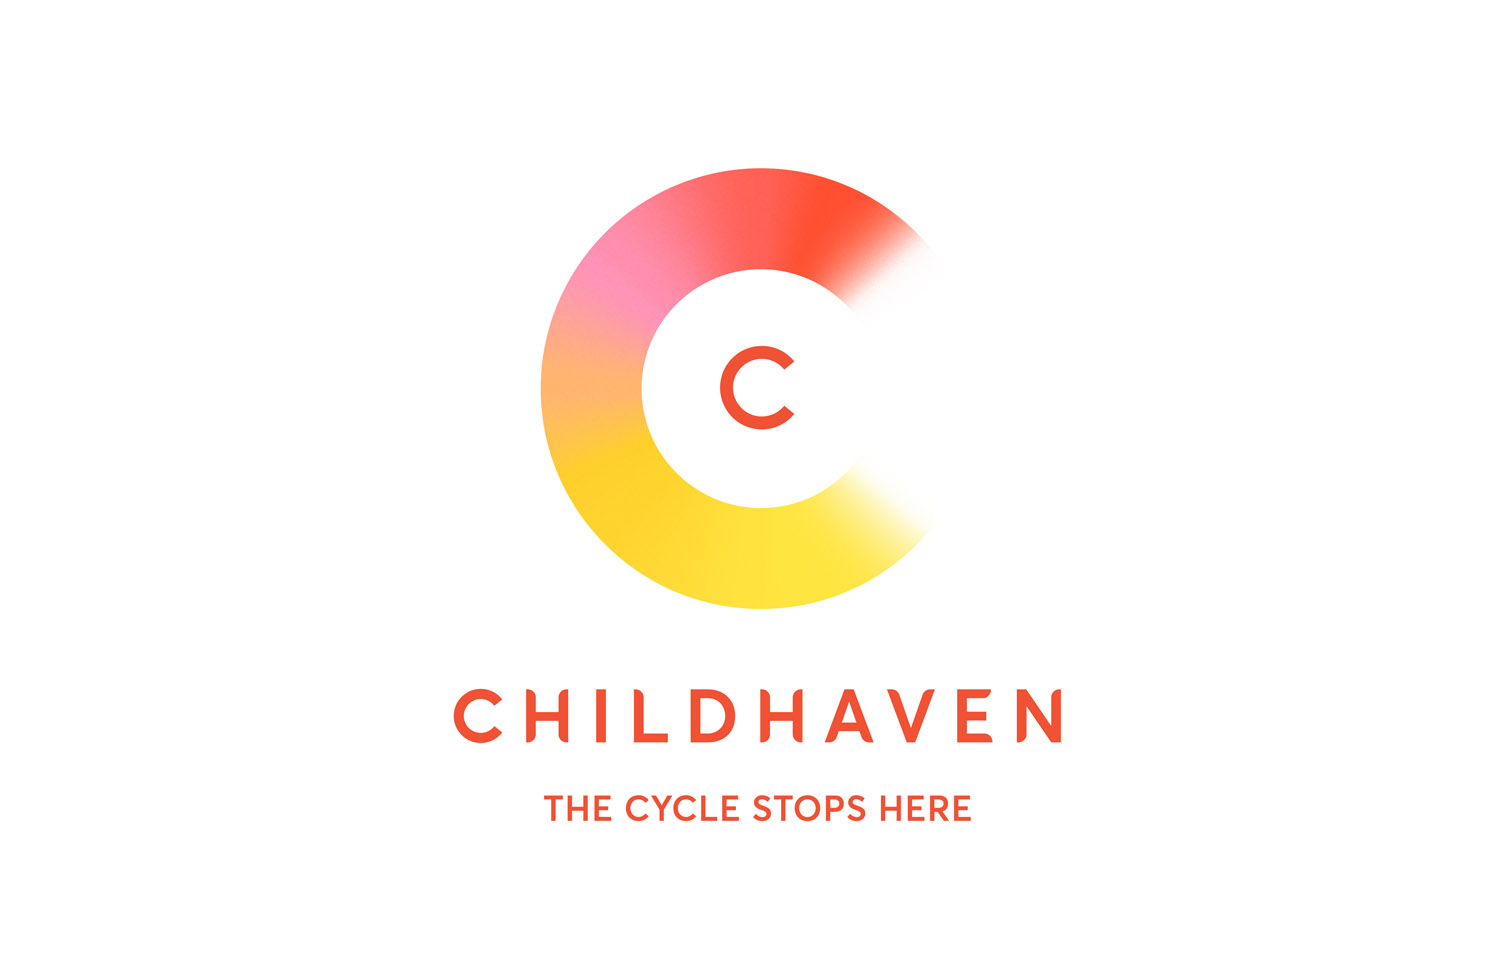 Award-winning Childhaven rebrand